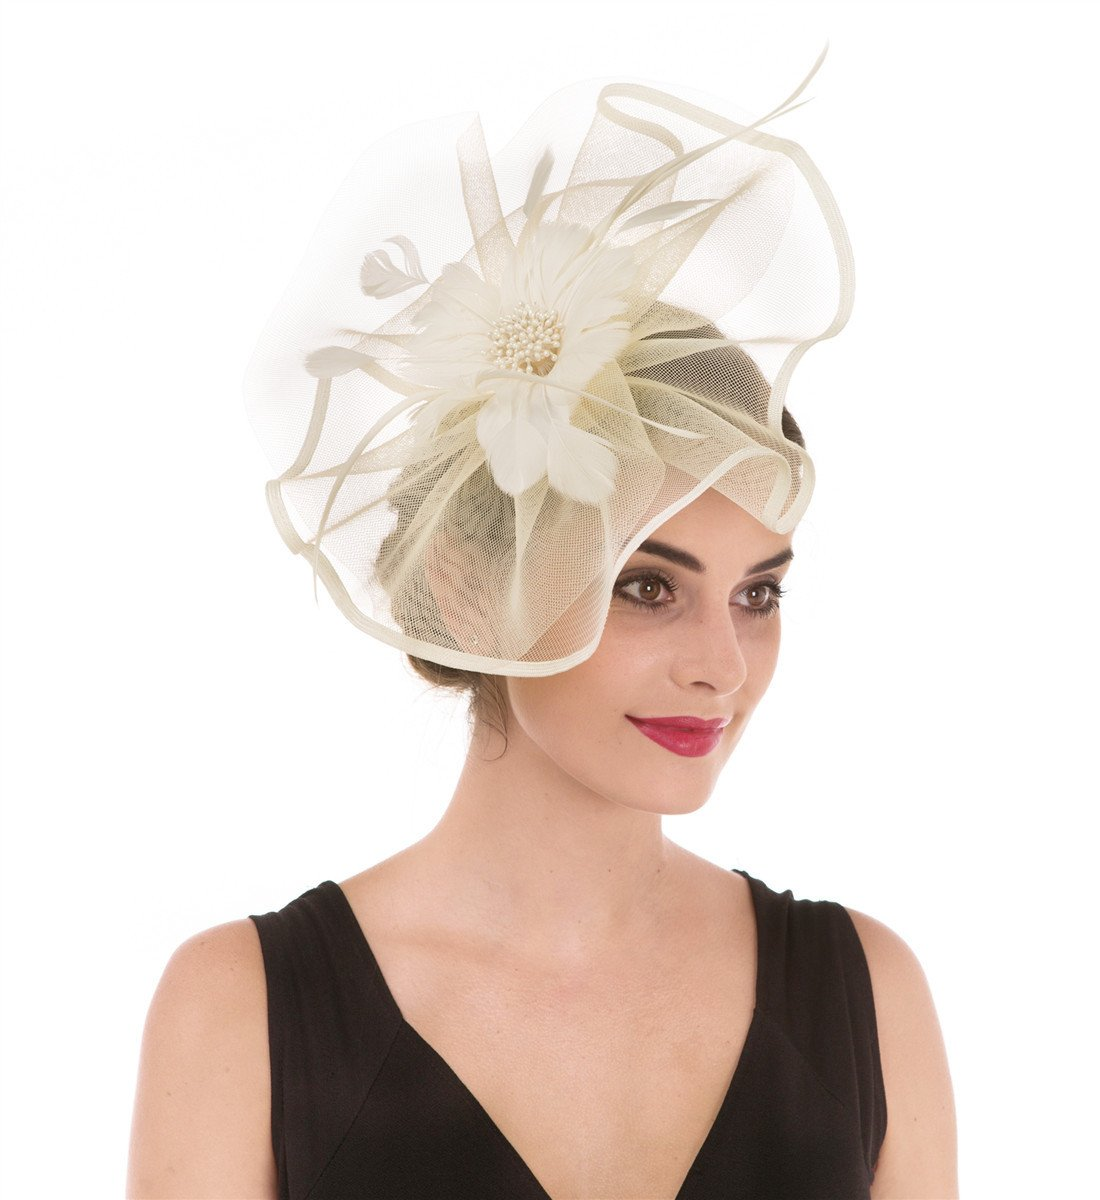 351dd53c91946 SAFERIN Fascinator Hat Feather Mesh Net Veil Wedding Tea Party Hat Flower  Hat with Clip and Hairband for Women and Girl (TA1-Beige)